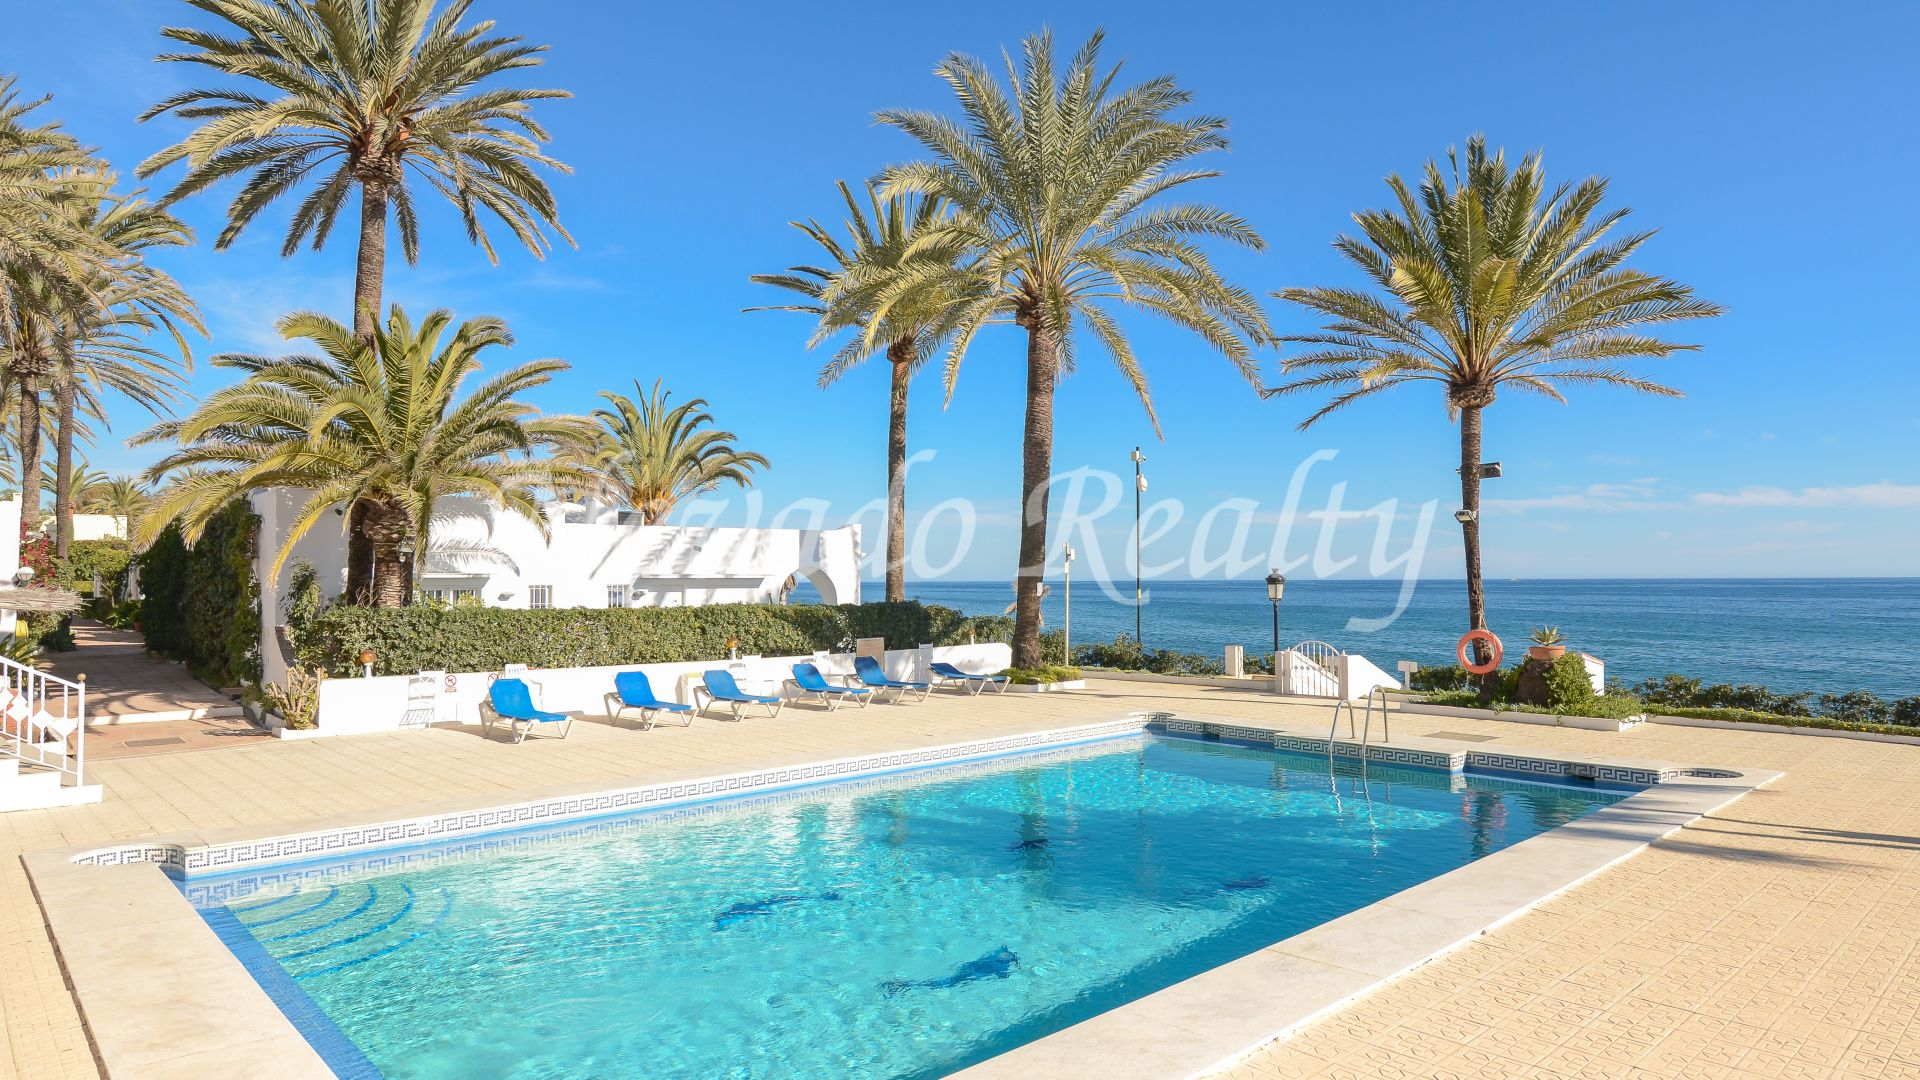 Special! Duplex apartment for sale within an exclusive complex on the first line of the beach